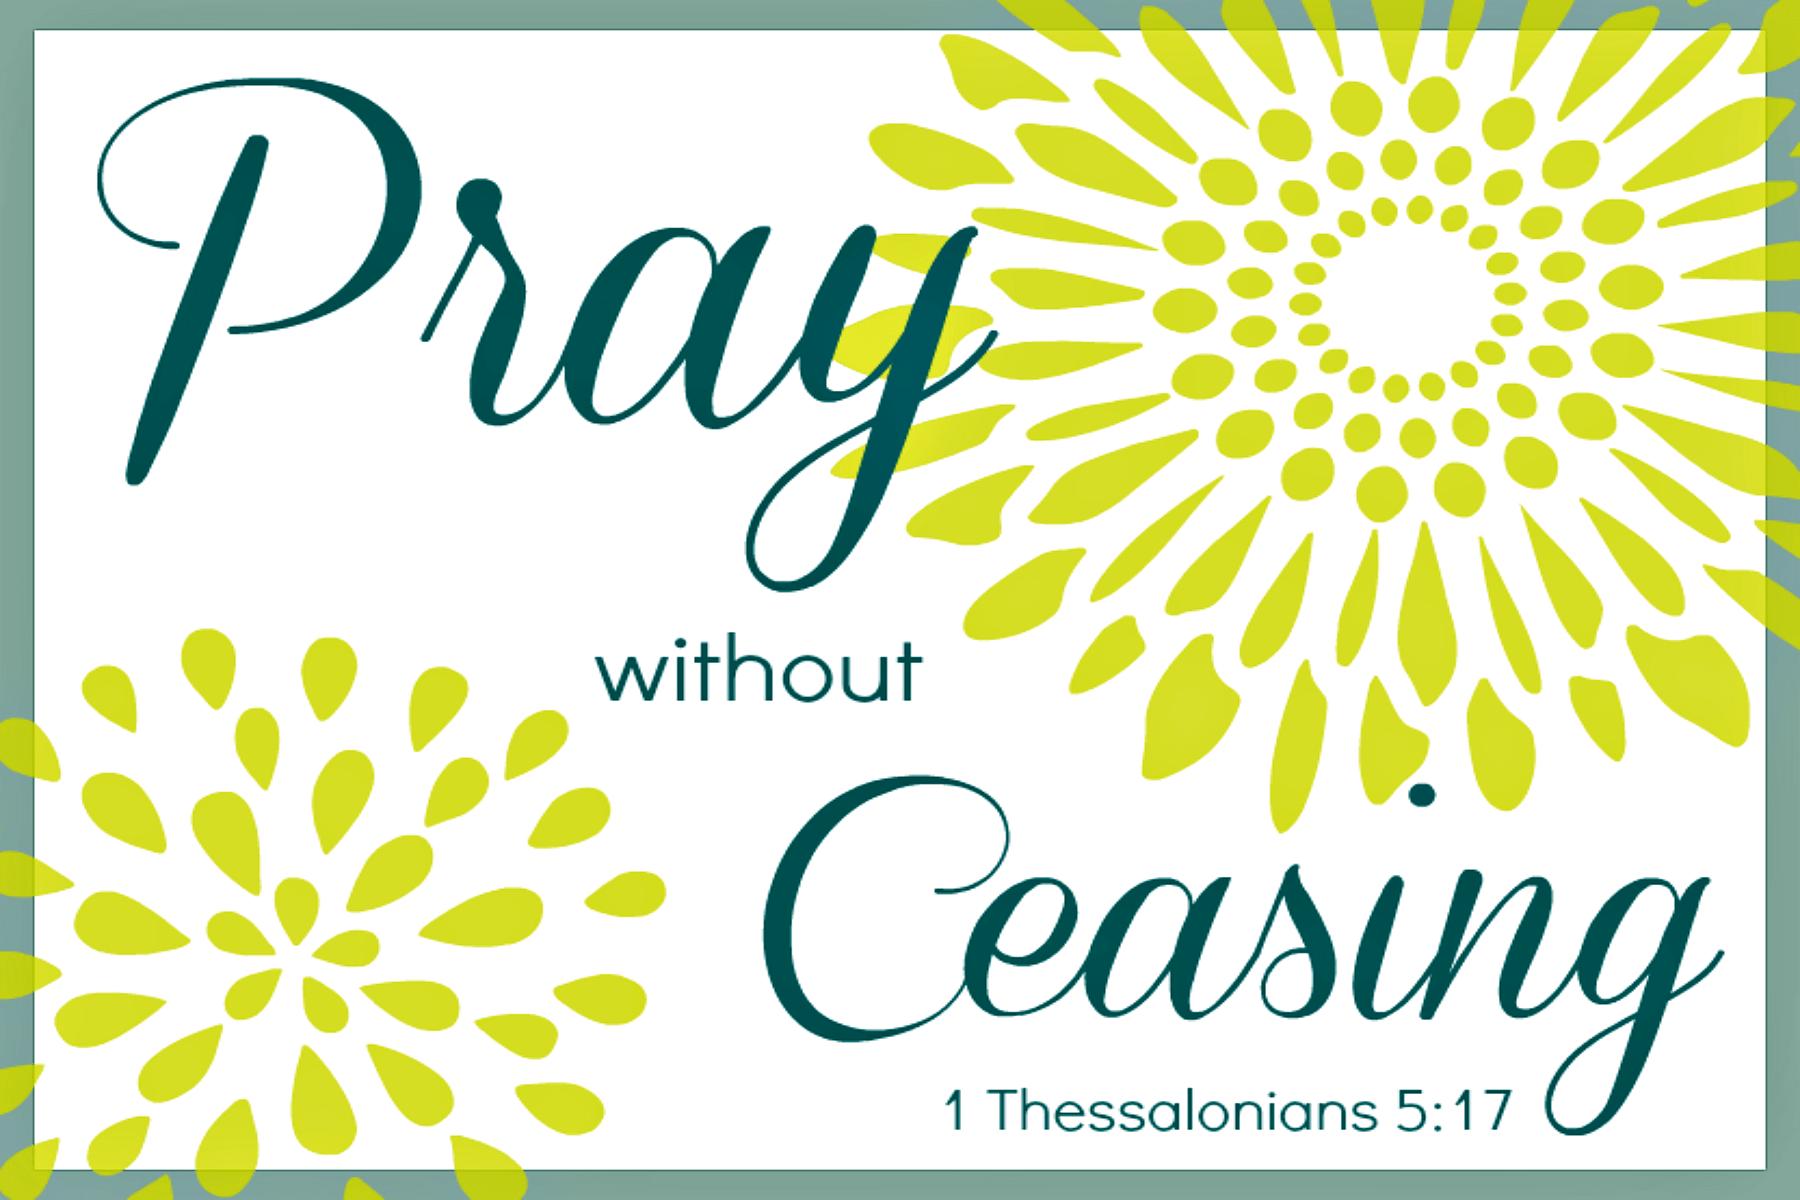 Pray-without-ceasing-4x6